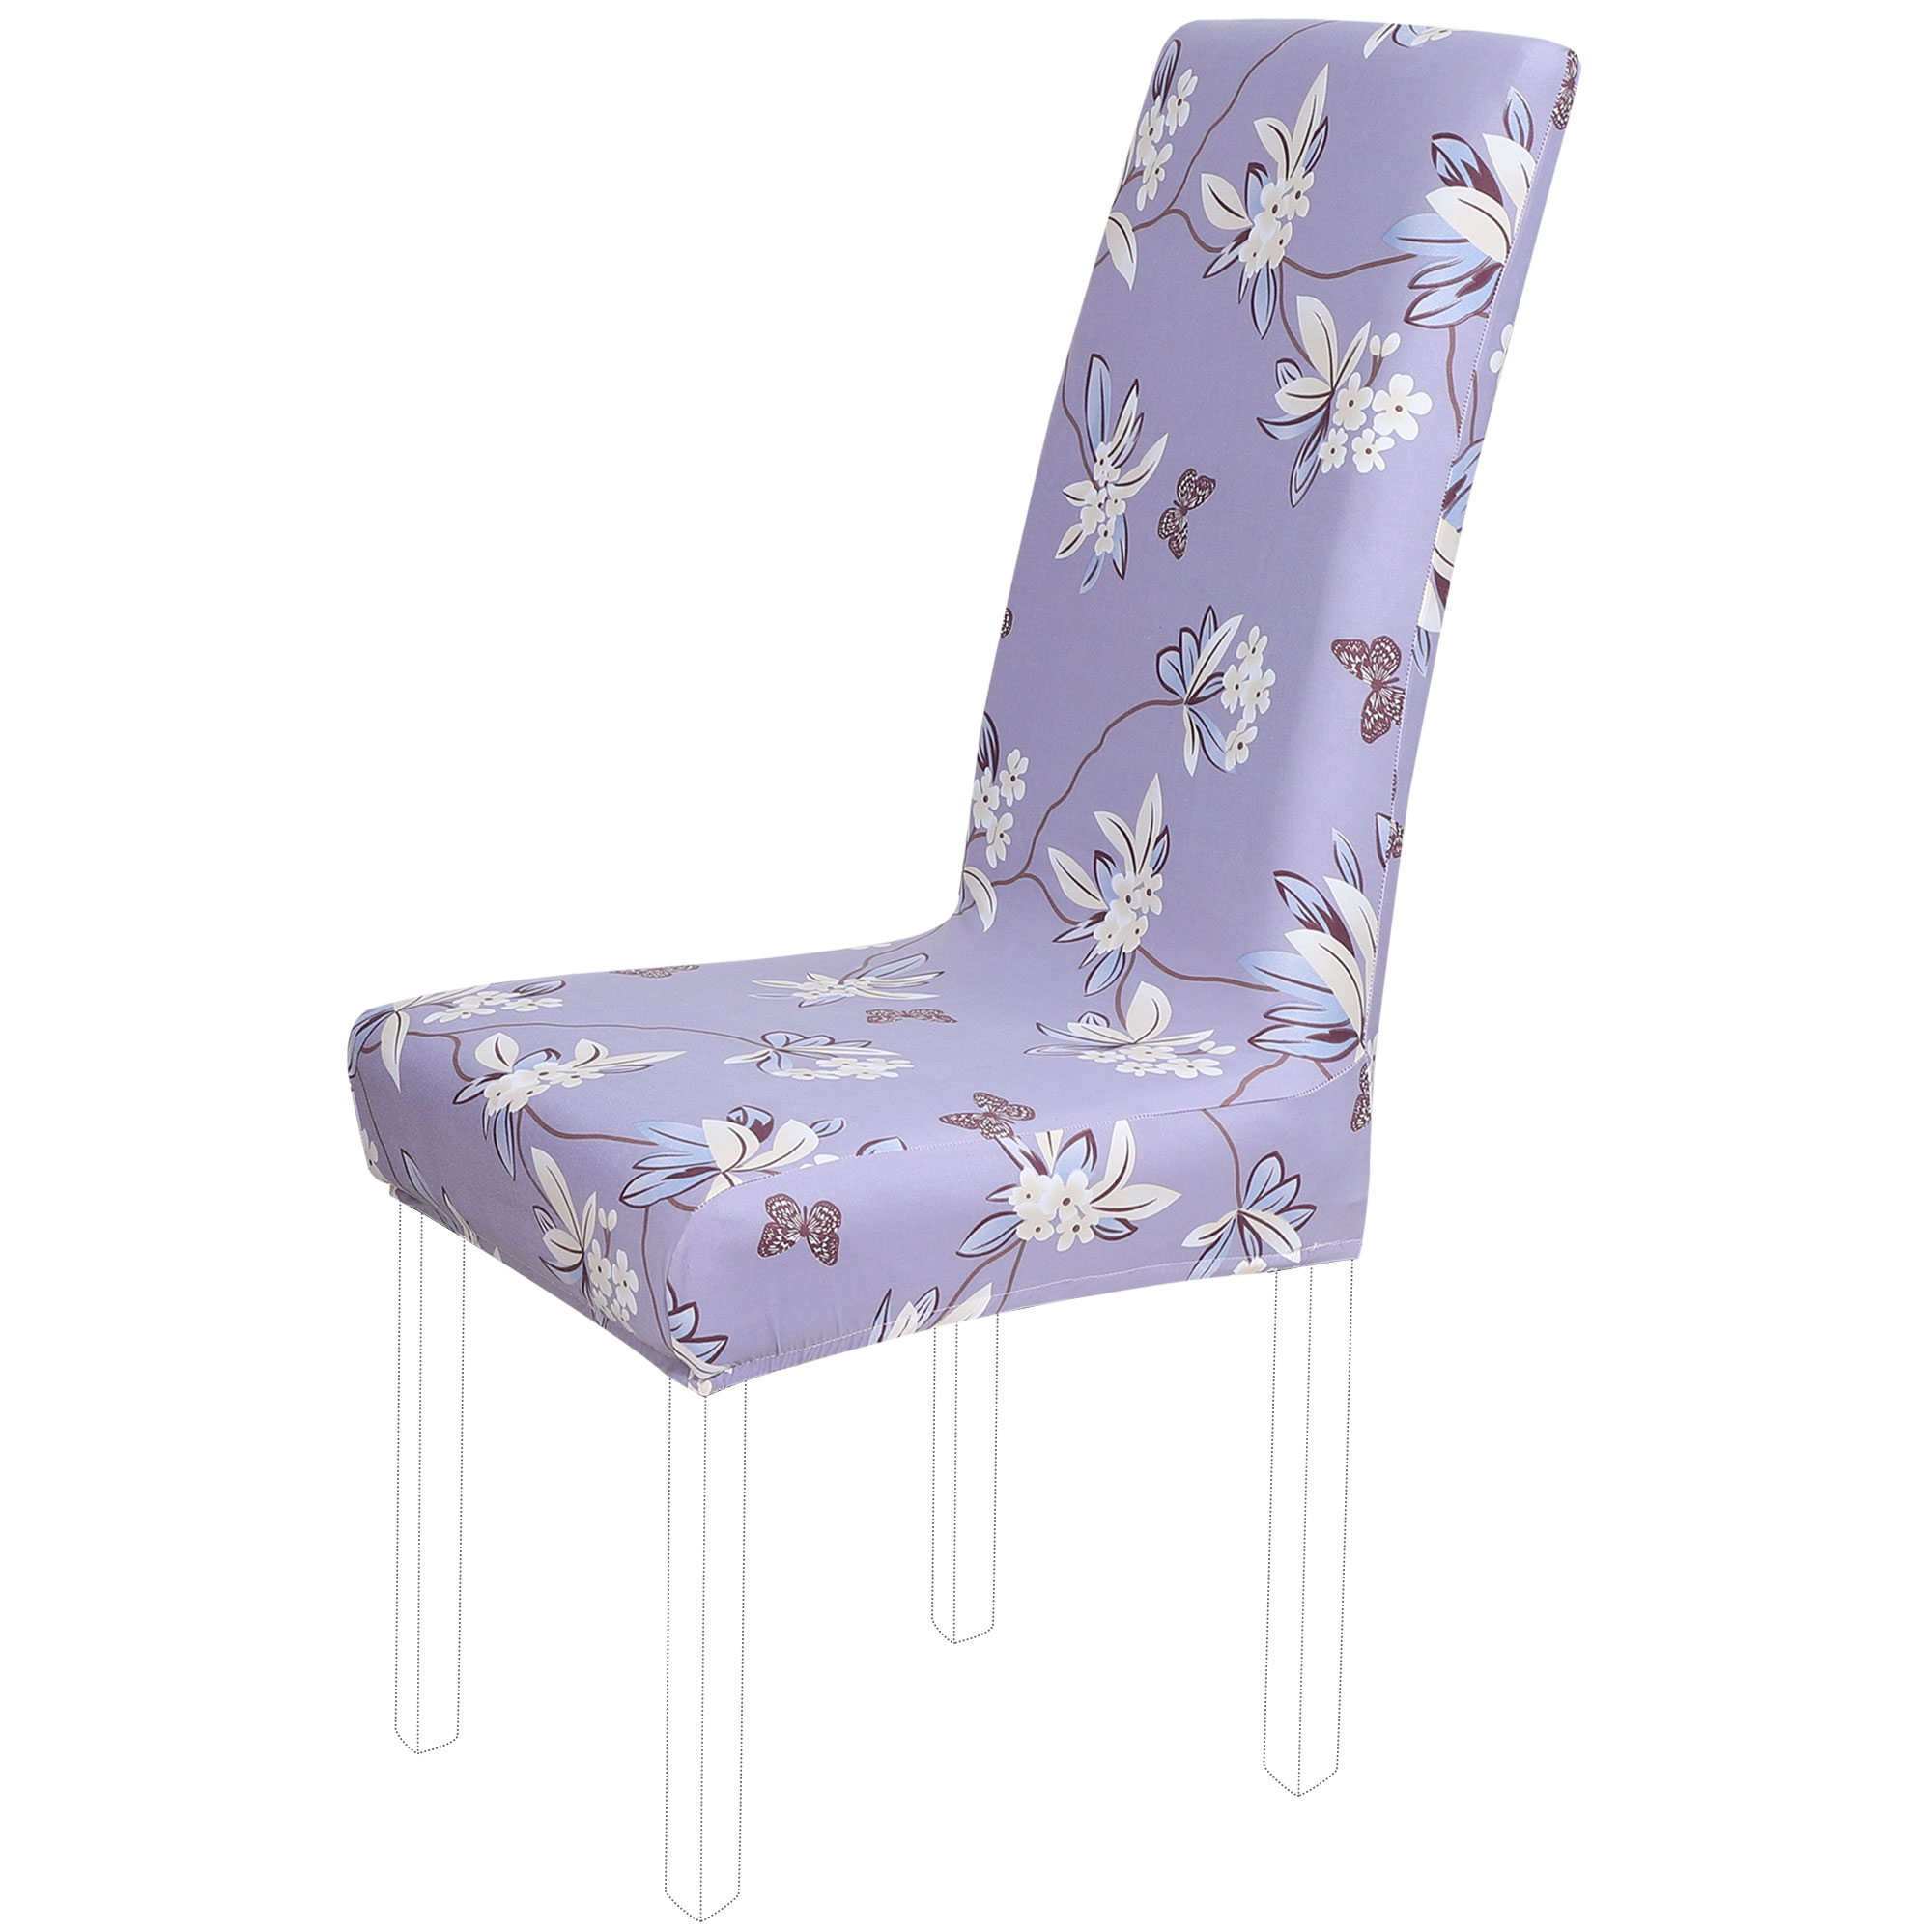 Floral Print Spandex Chair Covers Fit Home Dining Room Seat Slipcover Purple